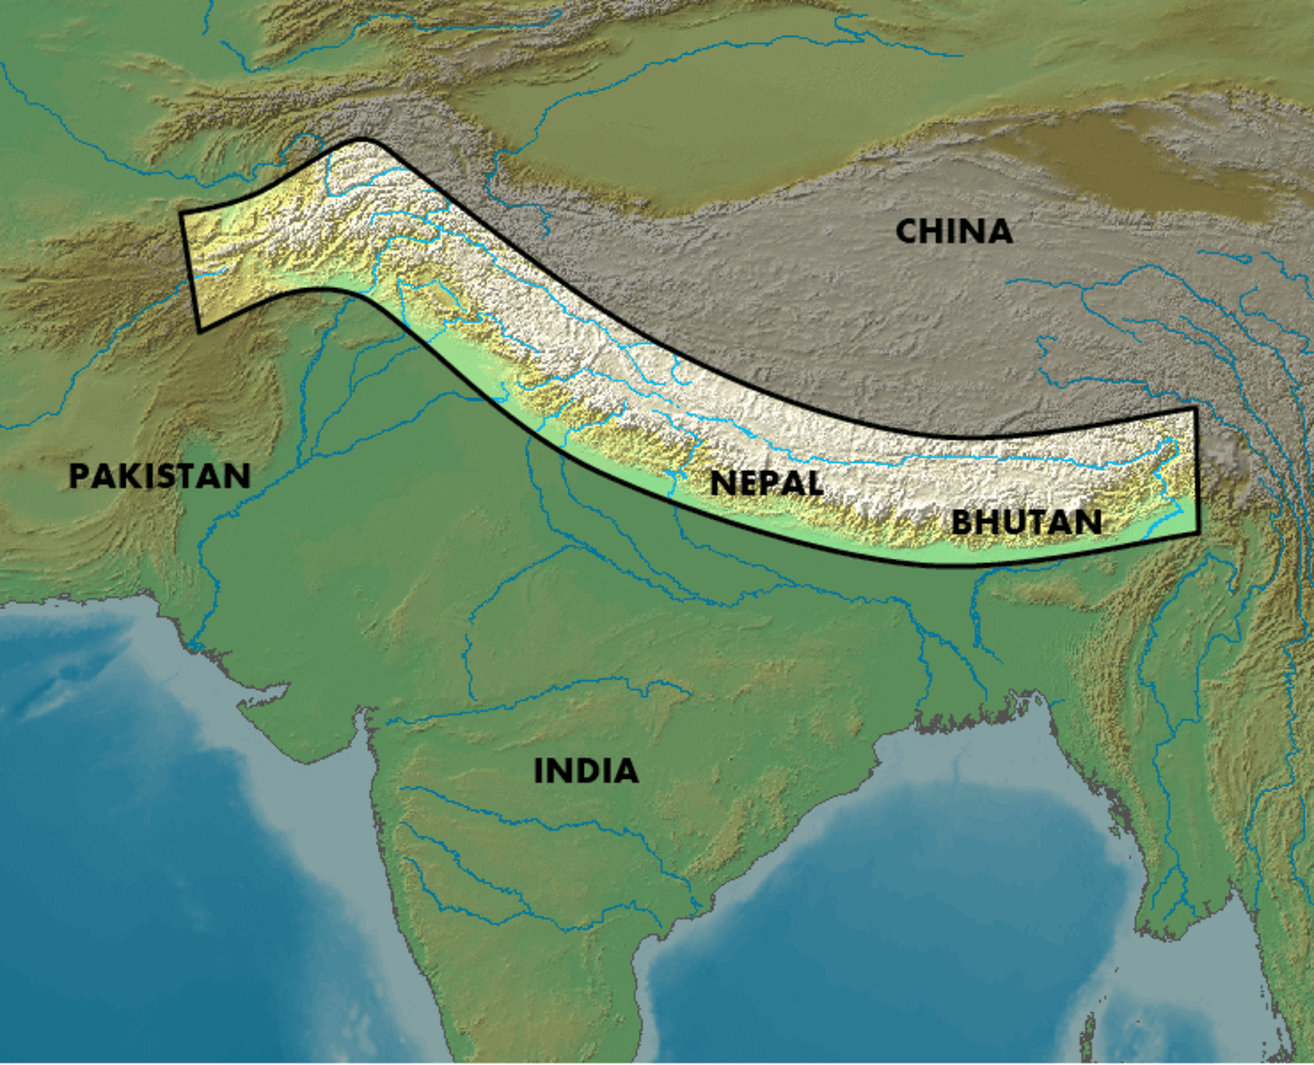 A rough outline of the Himalayas.